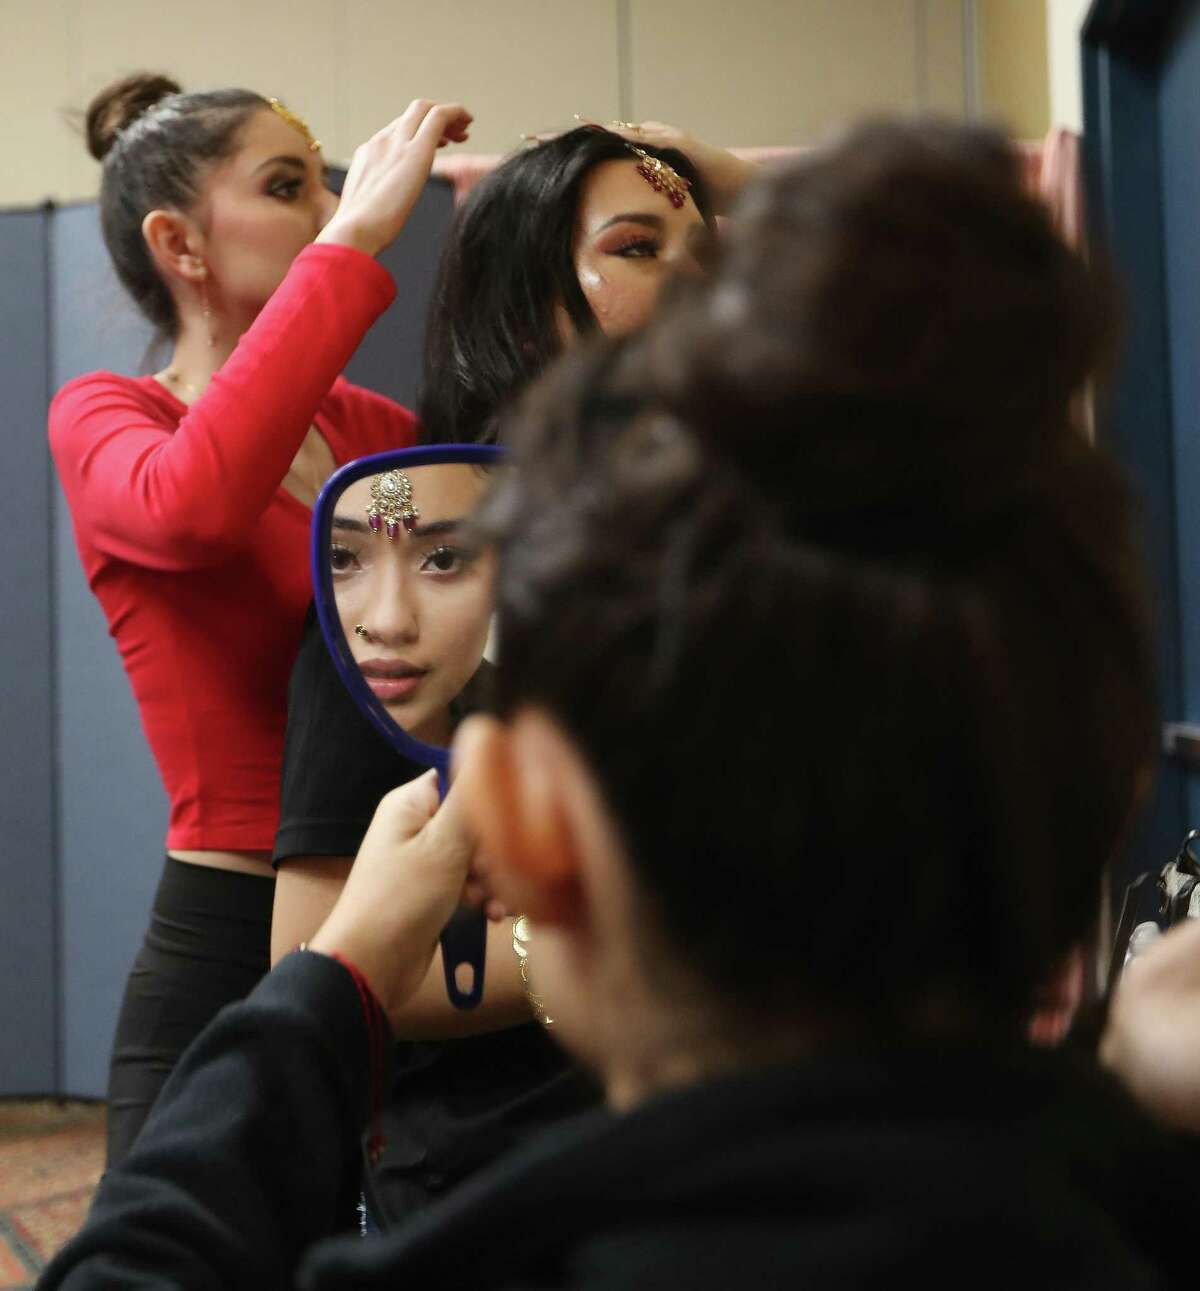 """Jocelyn Perales, 18, prepares to go on stage with other members of the Mis Belleza Mexico USA"""" group during the India Culture Center's 75th Independence Day of India Celebration at the Stafford Centre, Sunday, August 15, 2021, in Stafford."""